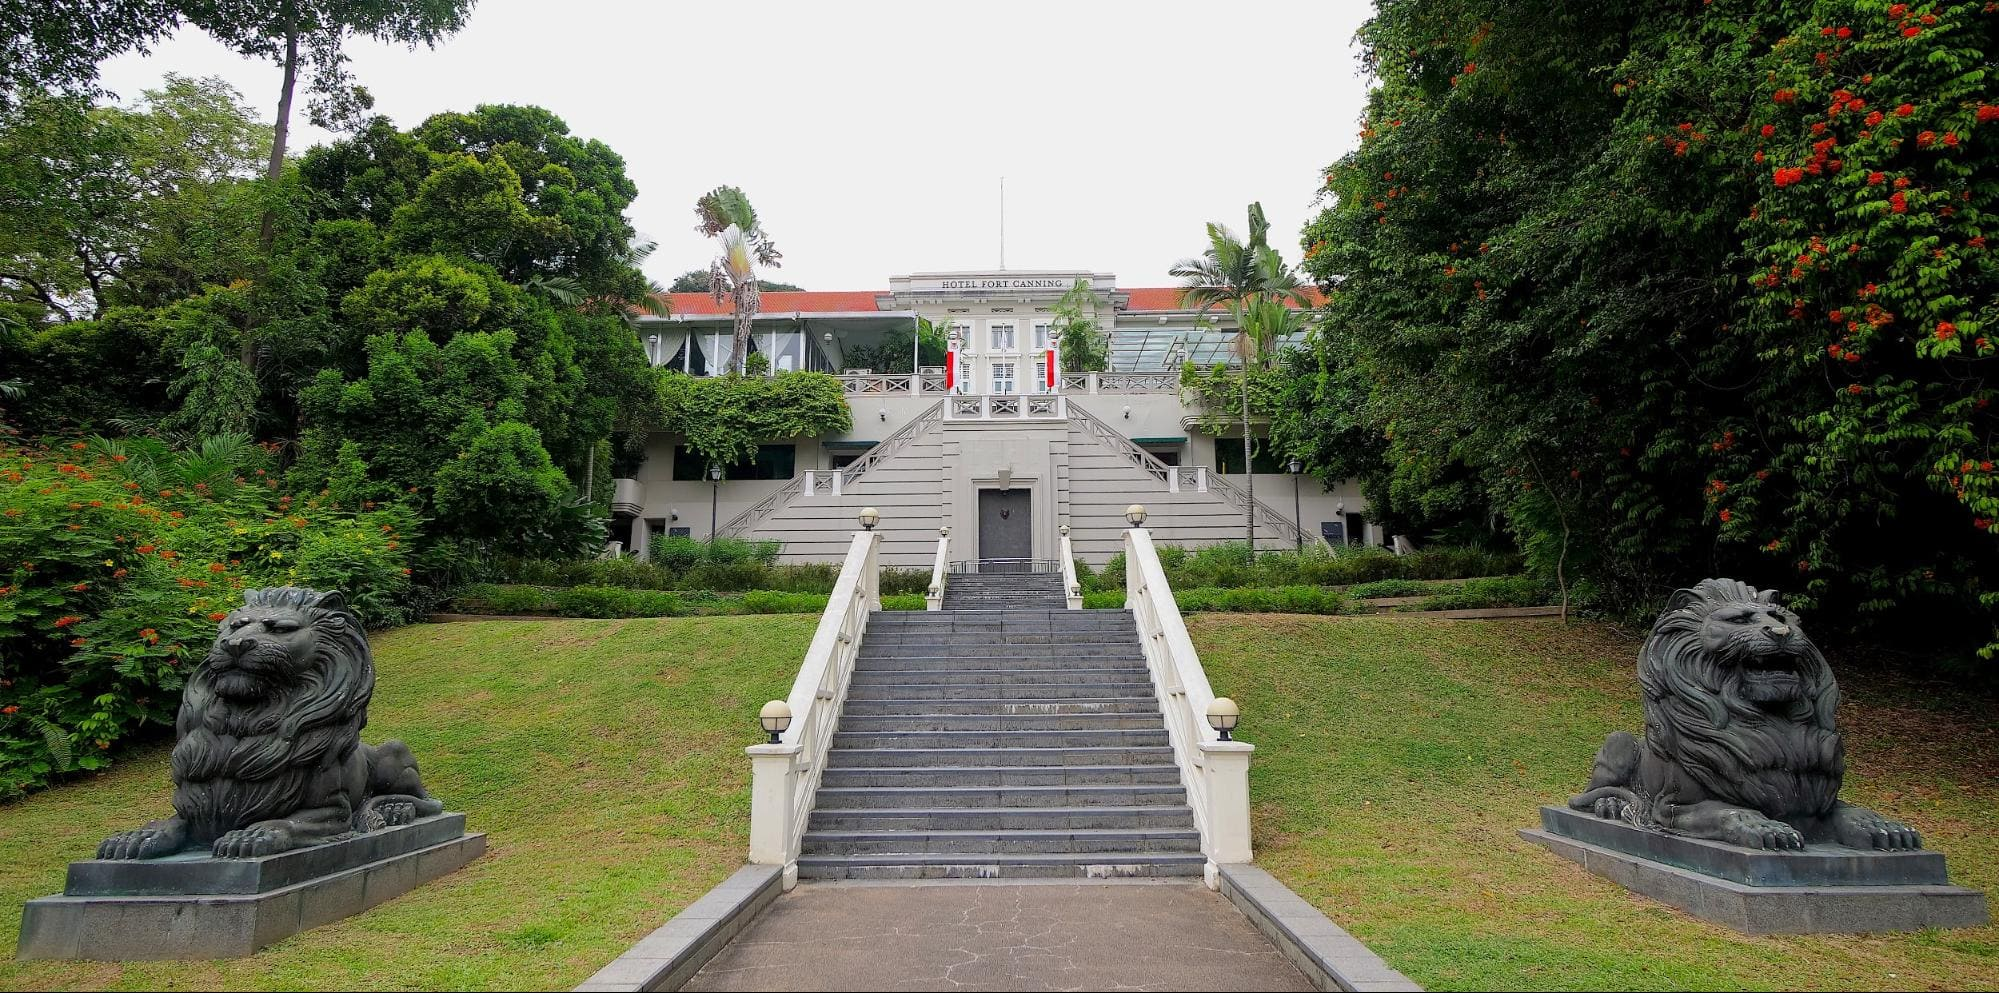 The grand entrance to Hotel Fort Canning